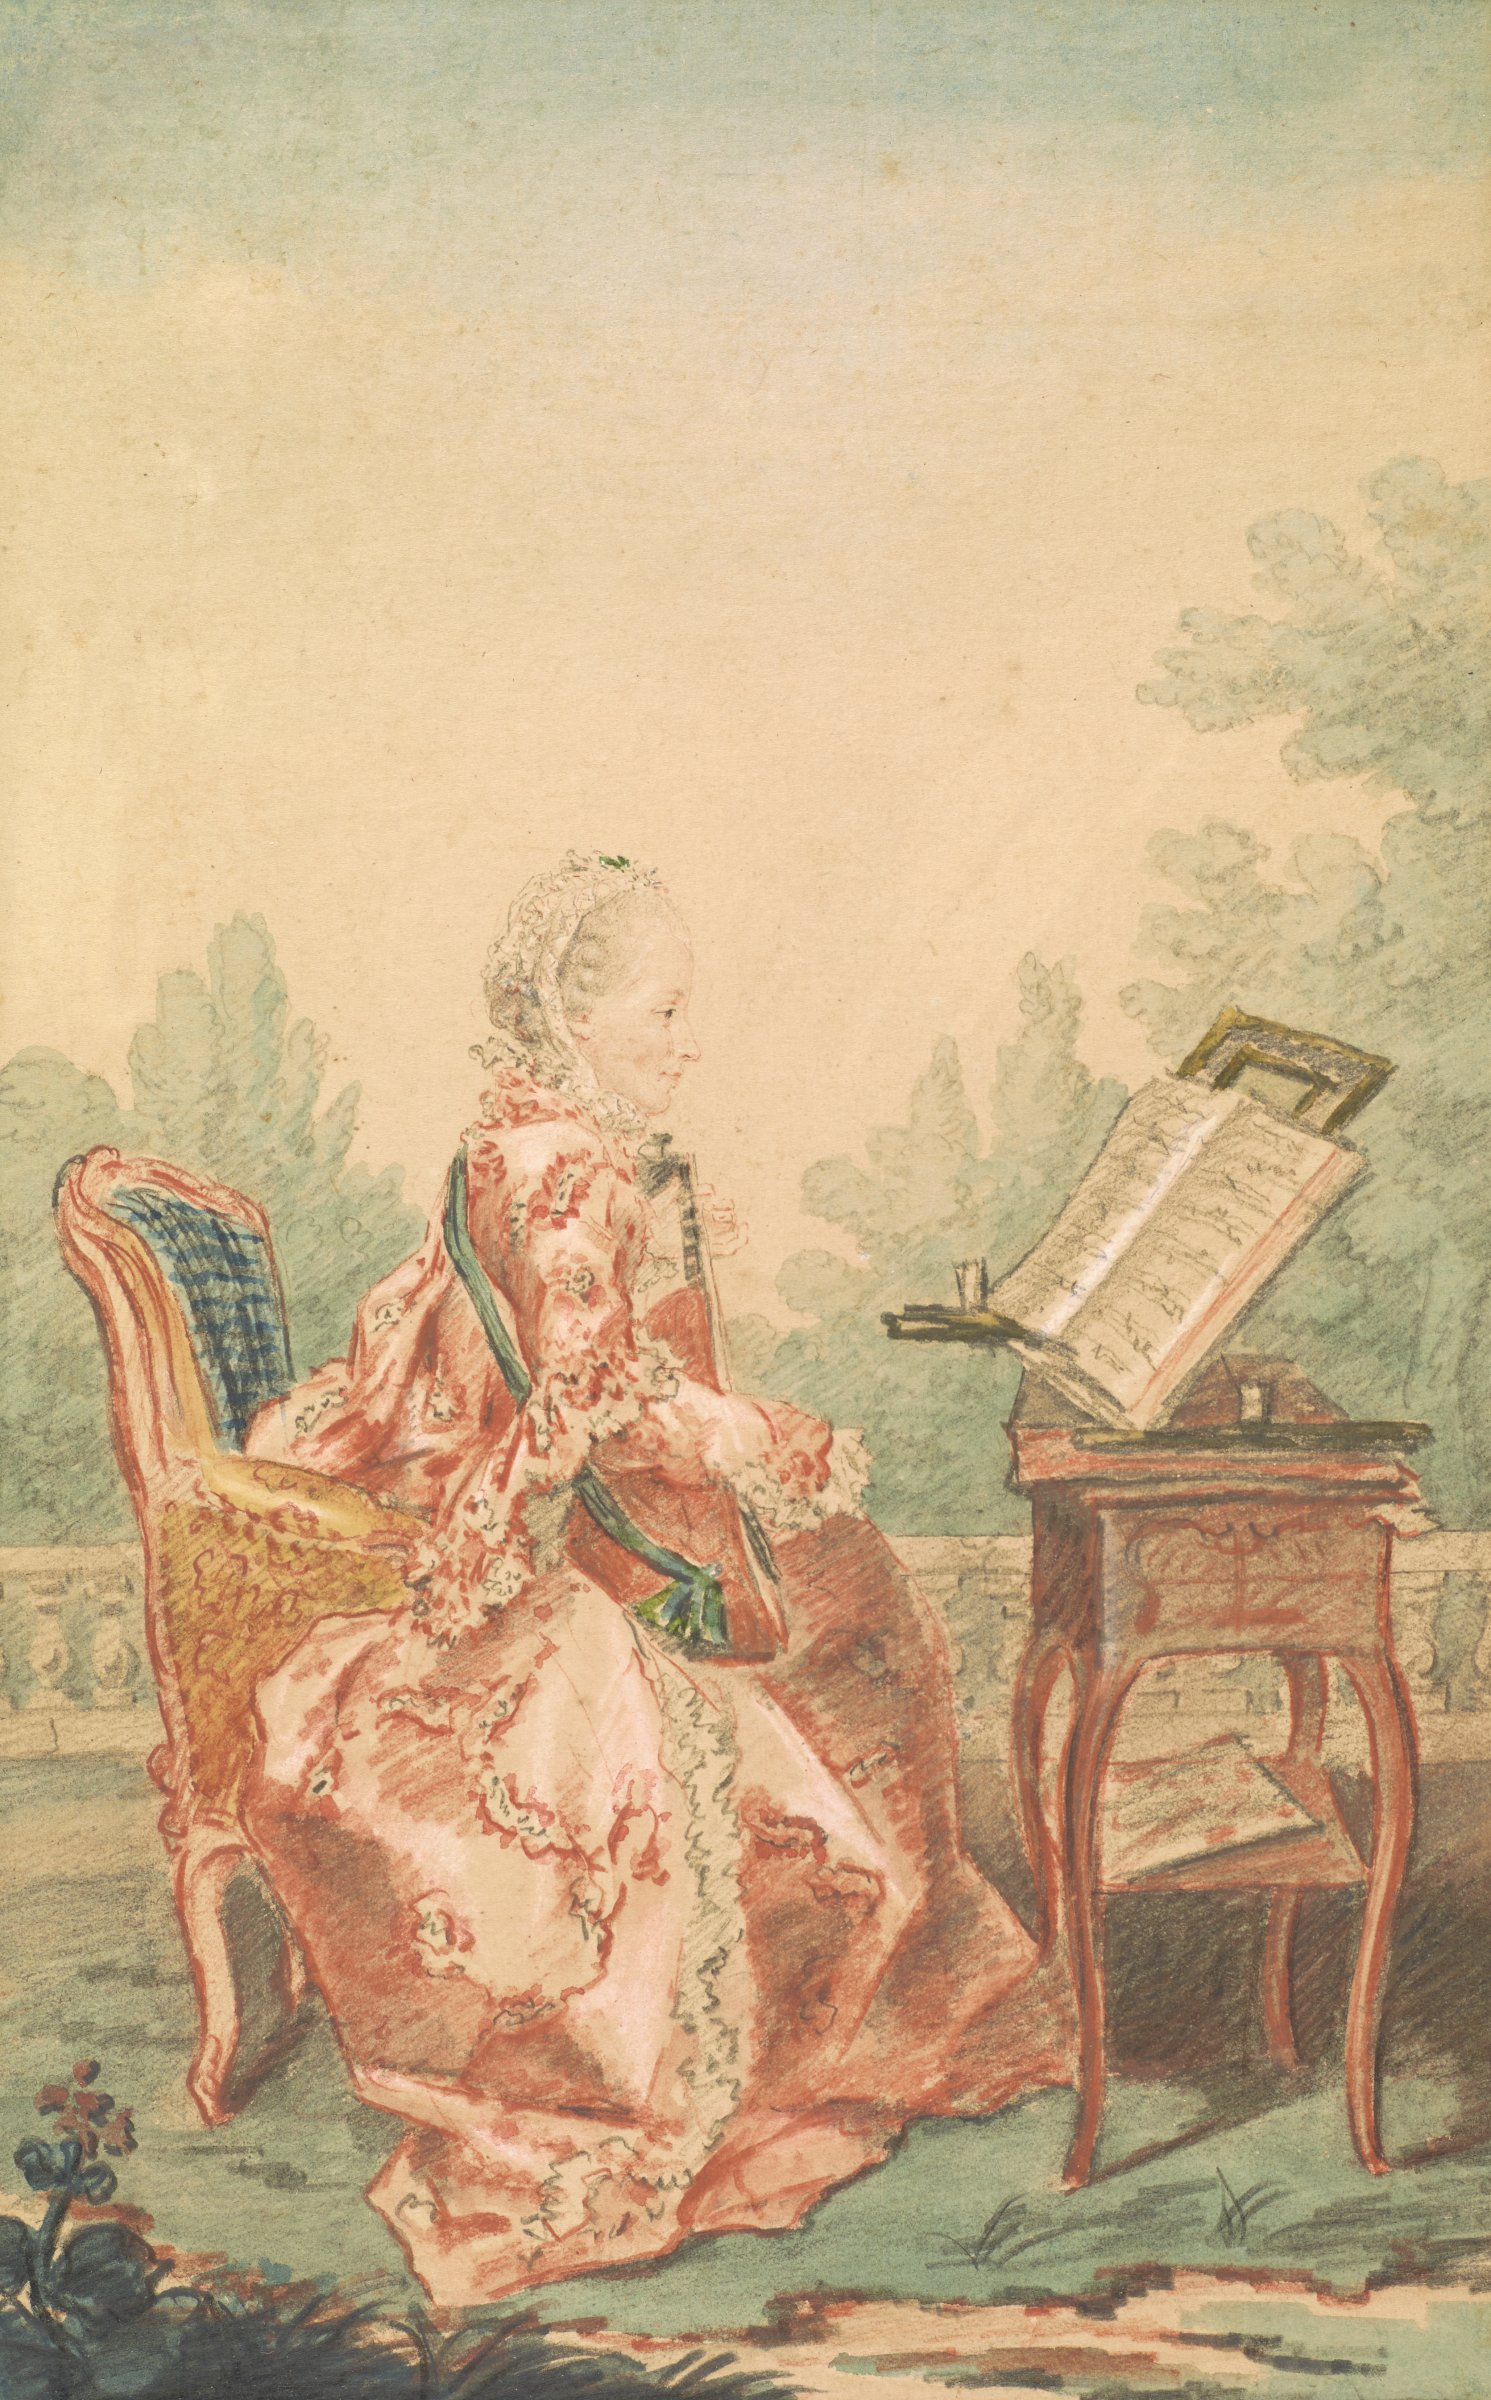 A woman in profile and dressed elaborately plays a stringed instrument while reading sheet music. She is set outside within a terrace.